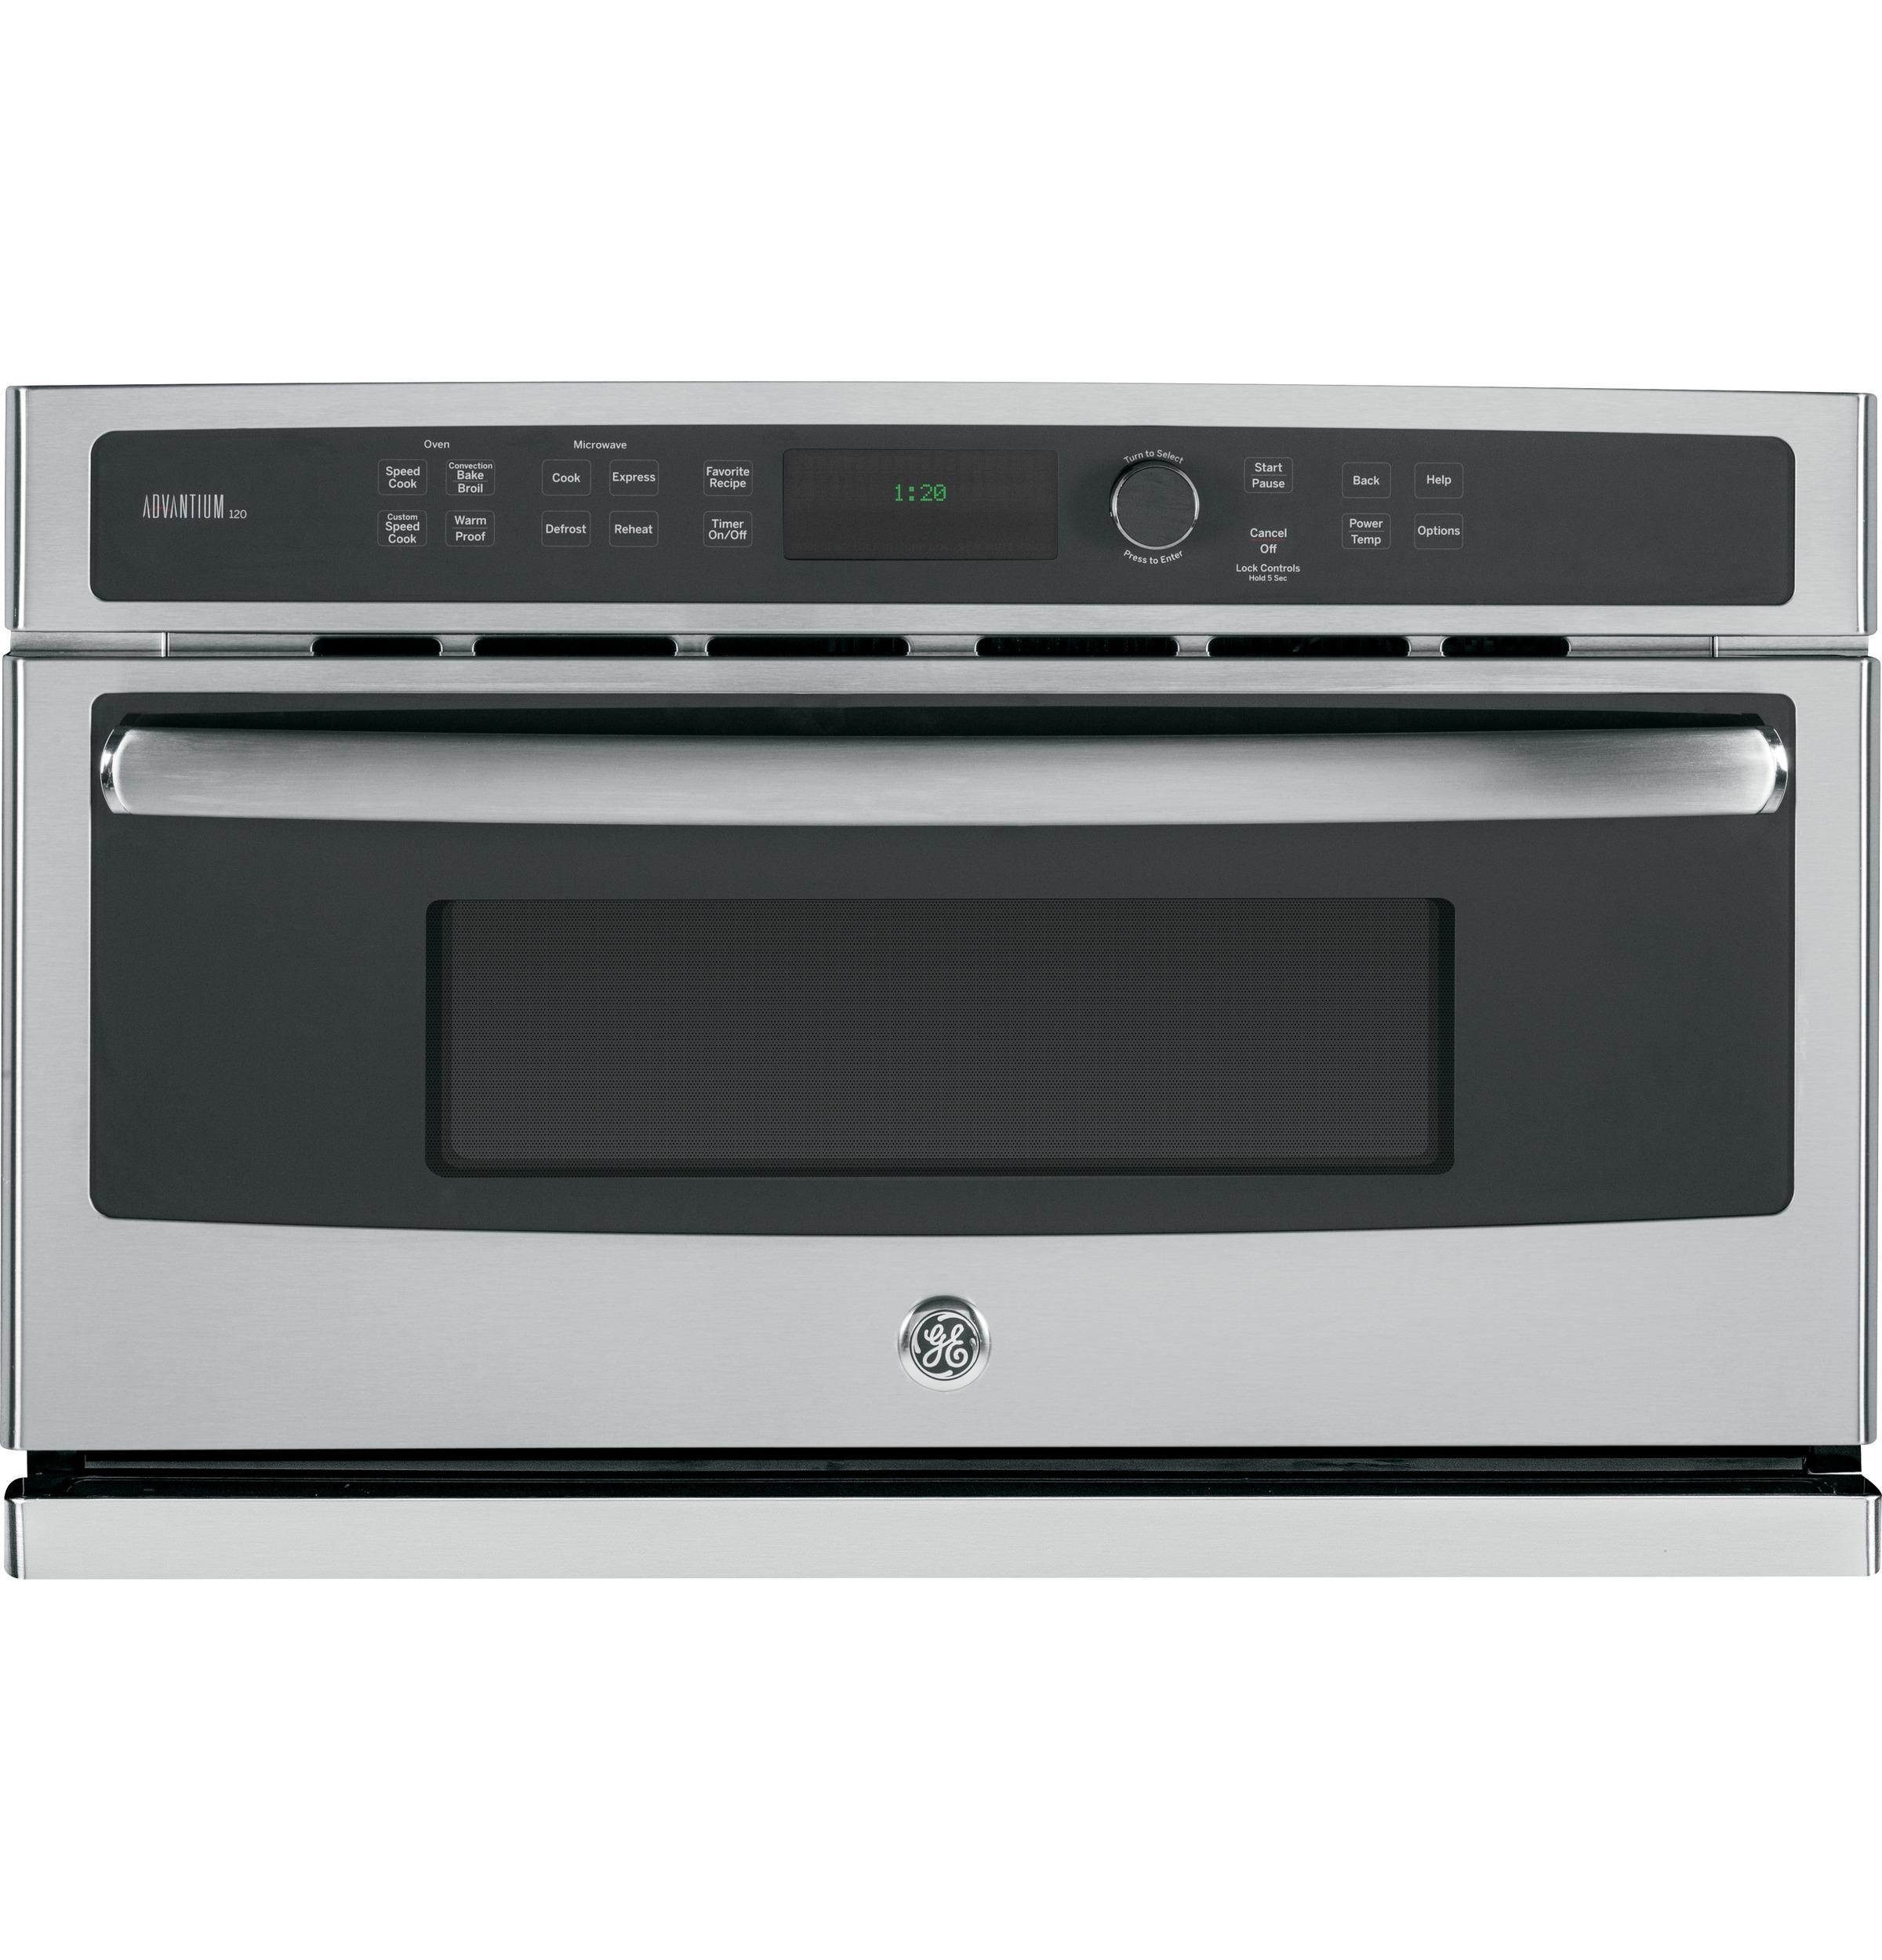 GE Appliances Electric Wall Oven 30 in. 4-in-1 Wall Oven - Item Number: PSB9120SFSS